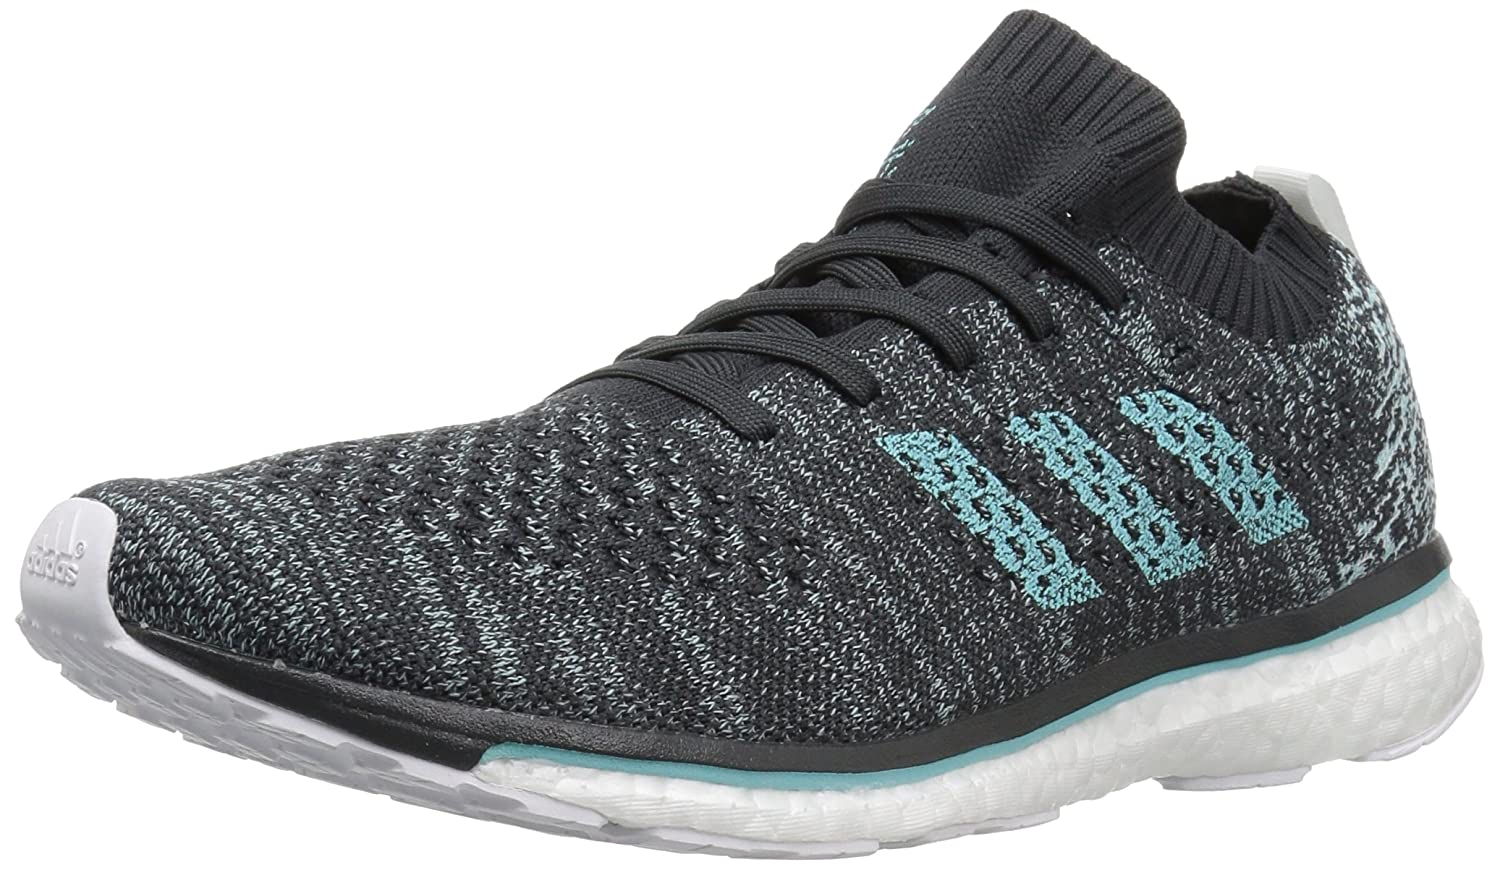 new product 29d0a f66d2 Amazon.com  adidas Adizero Mens Prime Parley CarbonBlue Running Shoes  (DB1252)  Road Running